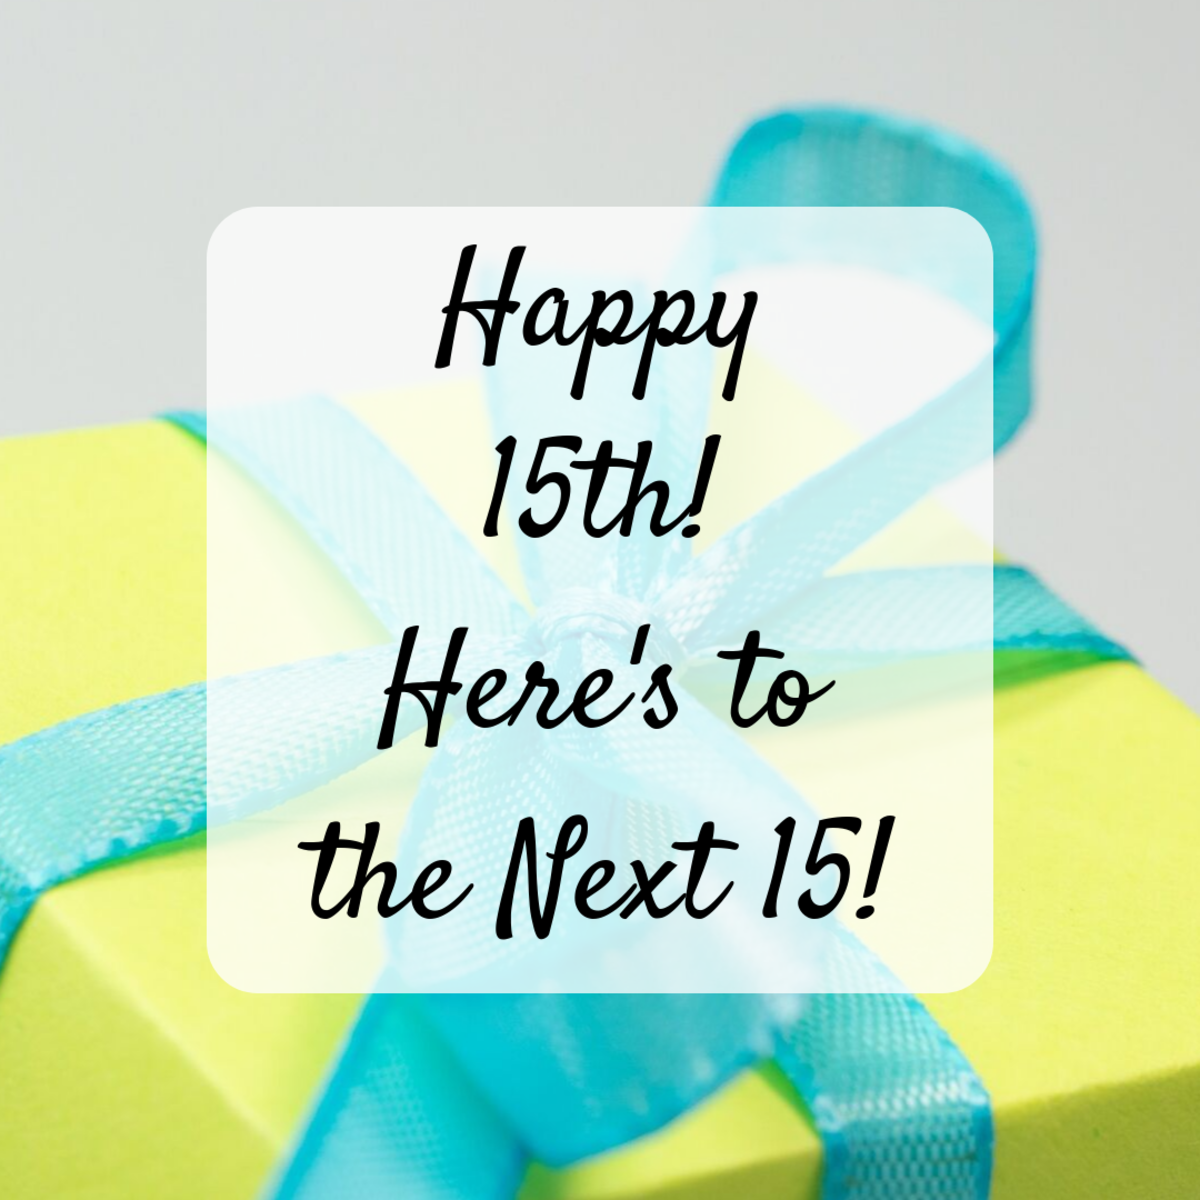 Happy 15th Birthday: Wishes, Messages, and Quotes for a 15